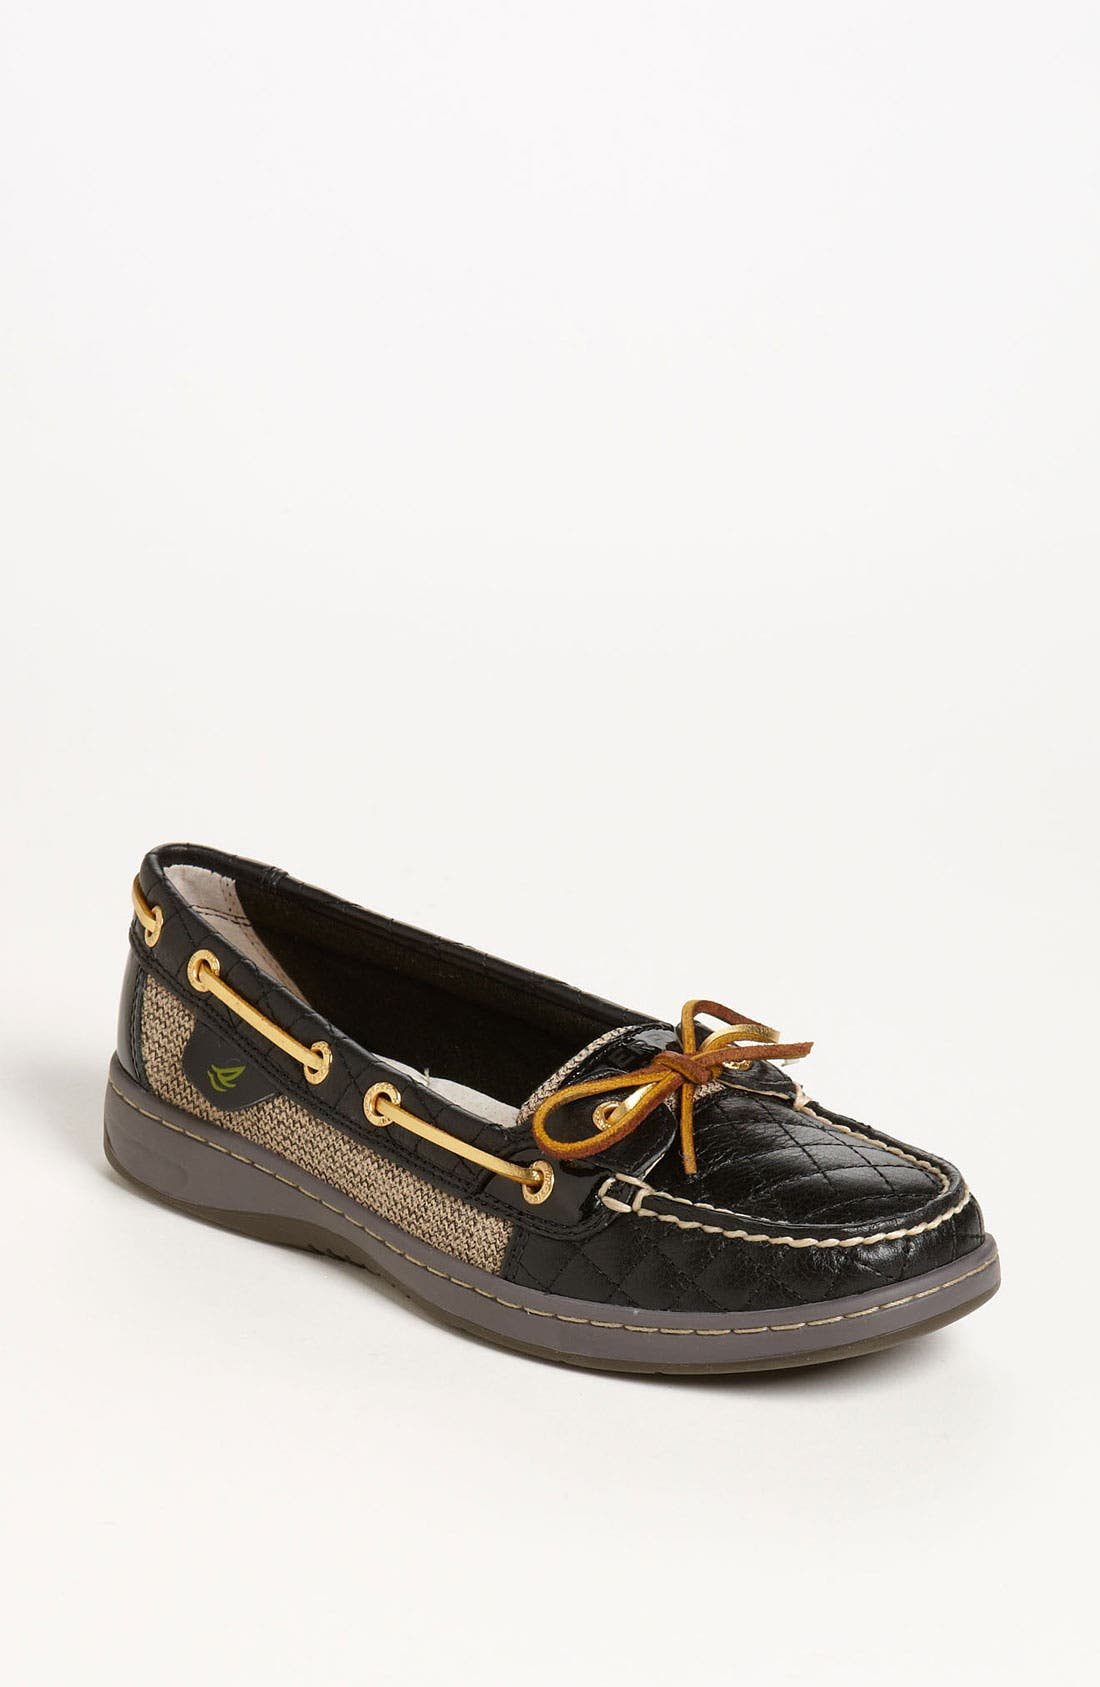 Main Image - Sperry Top-Sider® 'Angelfish - Quilted' Boat Shoe